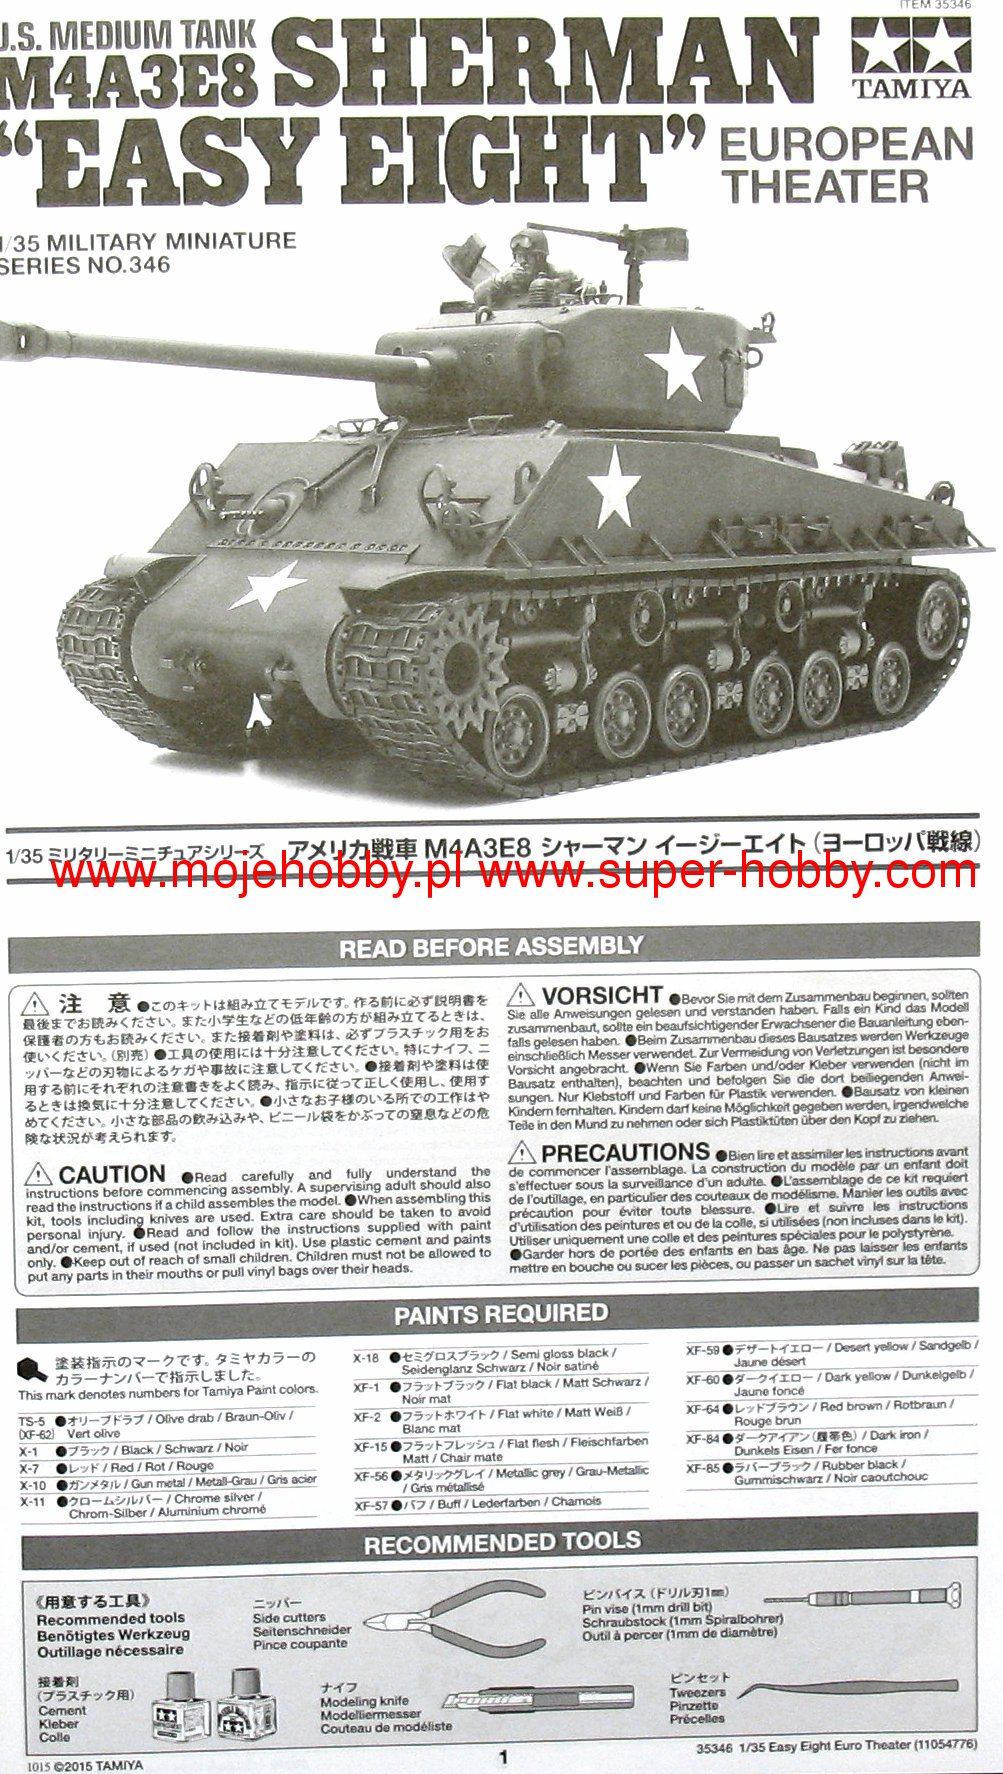 U S  Medium Tank M4A3E8 Sherman